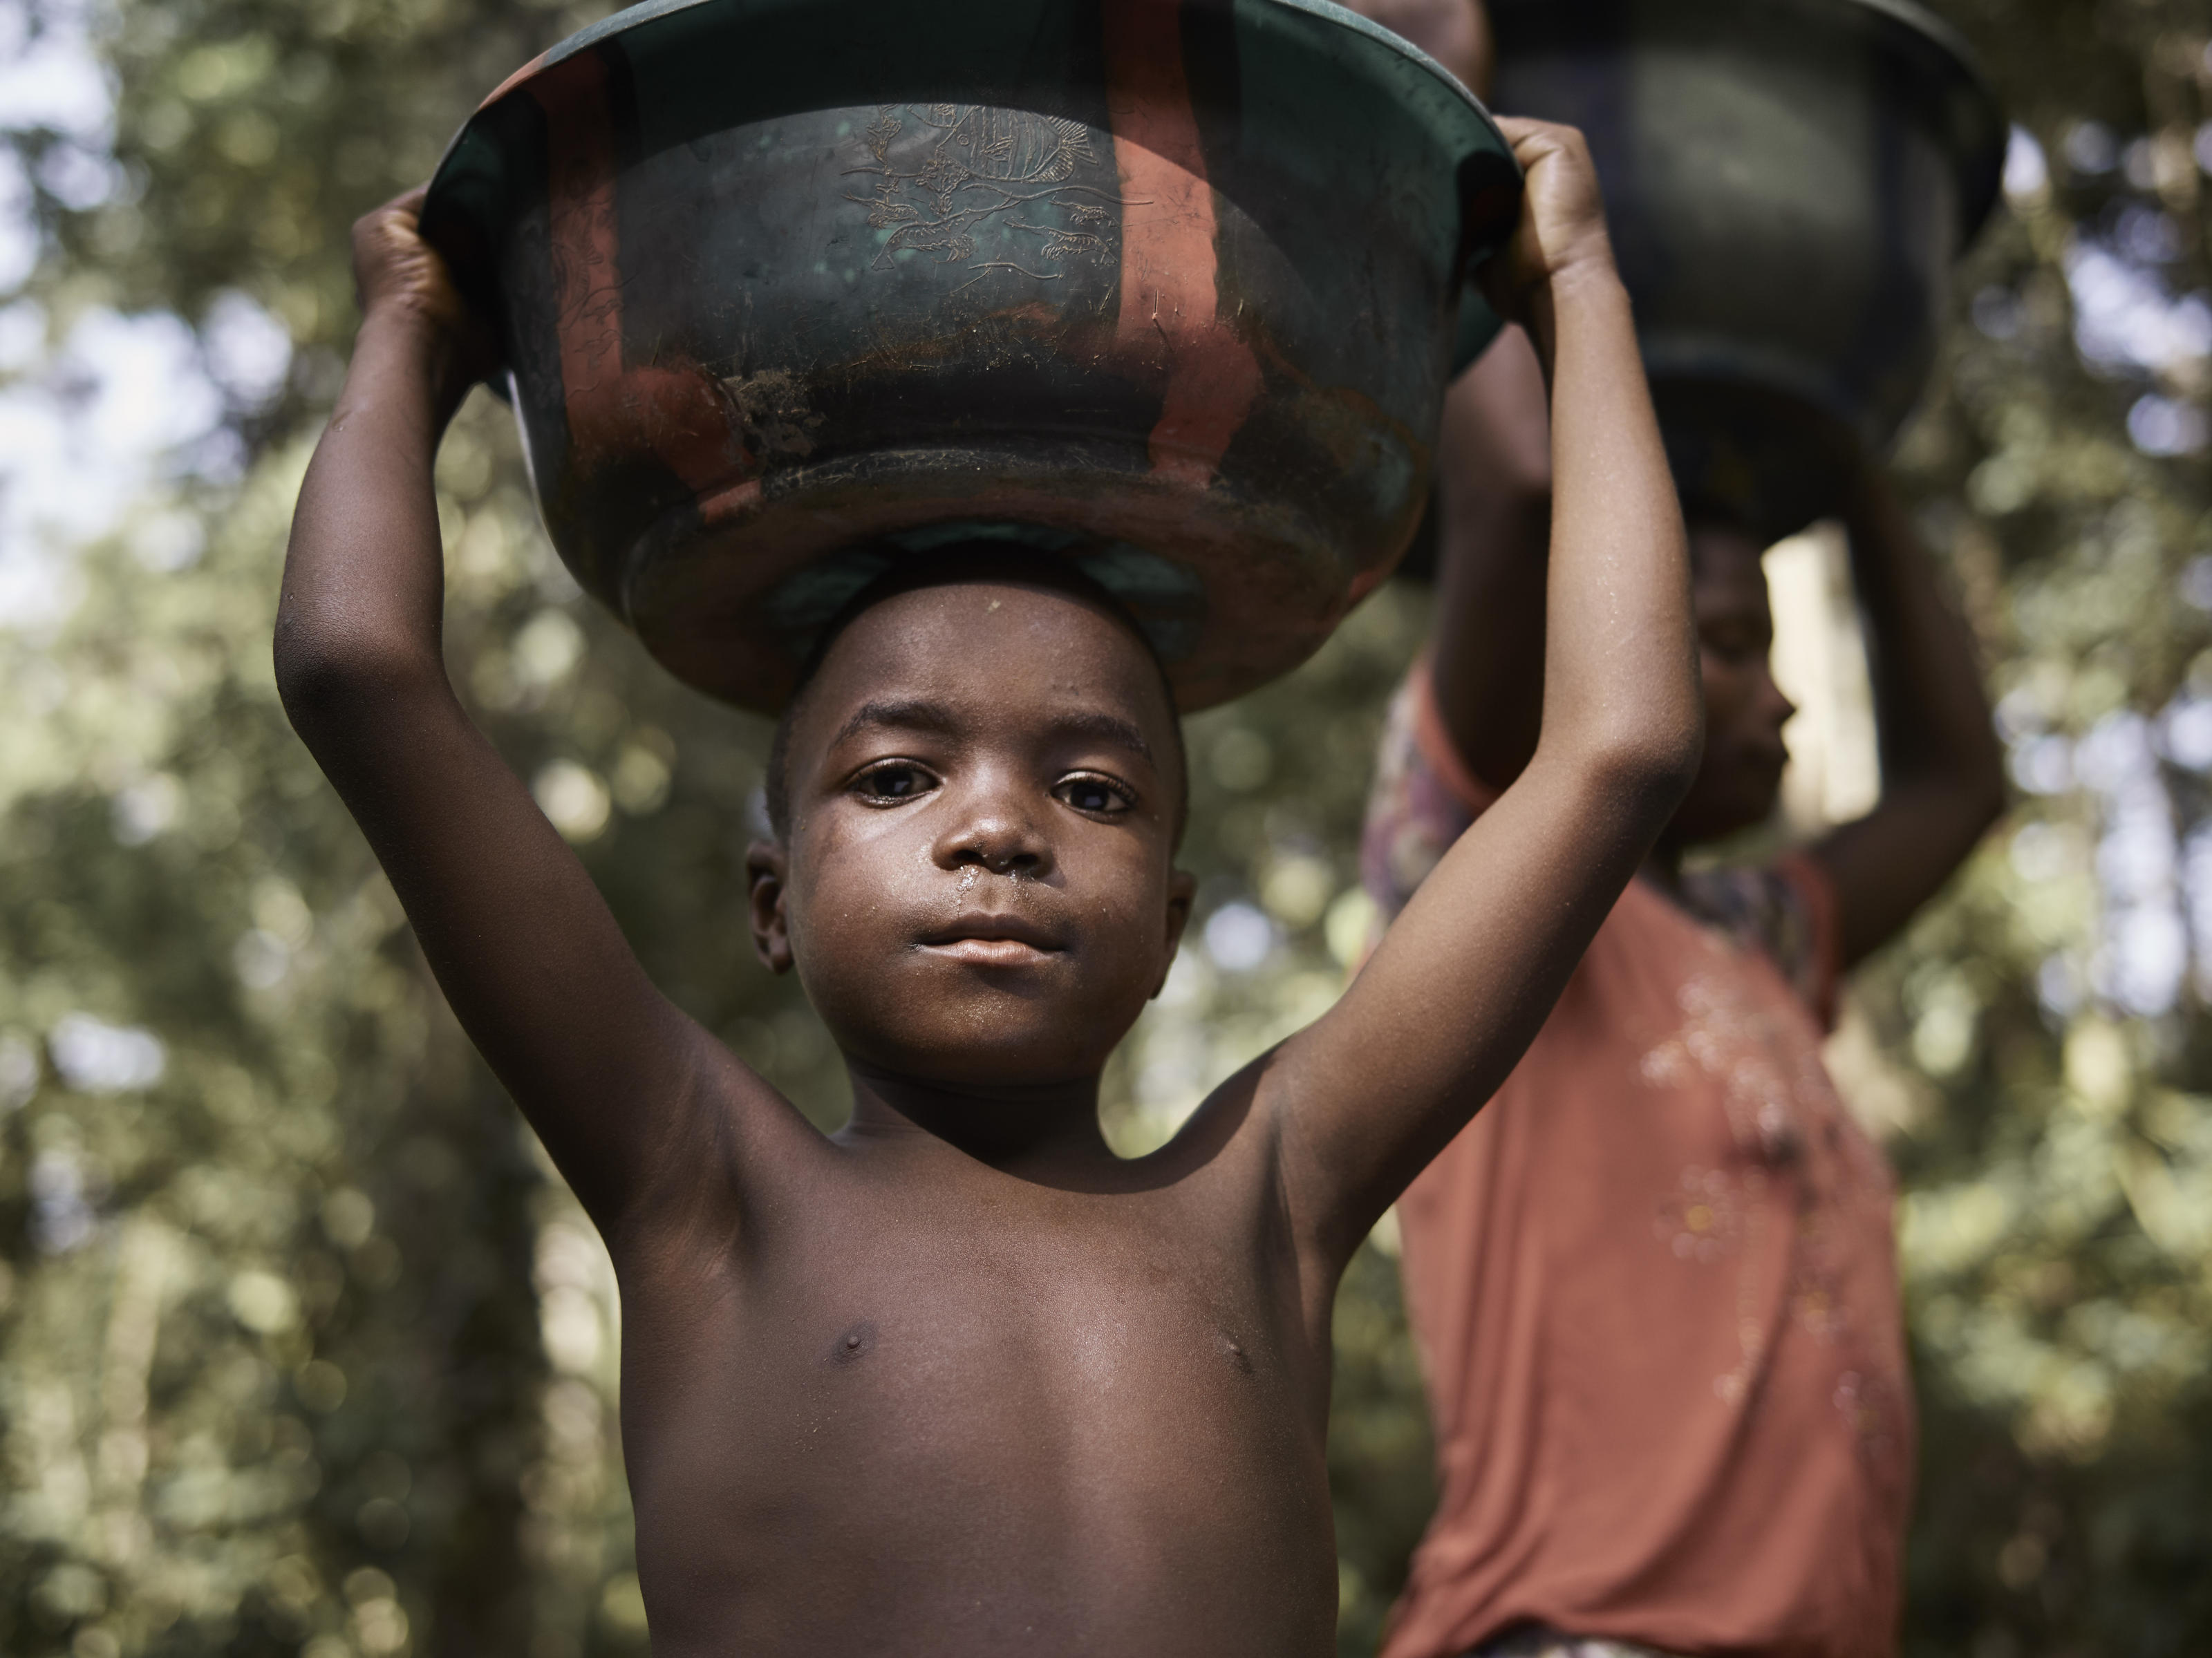 Lahai, 7, carries a basin of dirty water with his mother Matta Saffah, 27, as they make their way home from the previous dirty water source, a natural spring in the village of Tombohuaun. Everyone in the village has experienced persistent problems wit ...